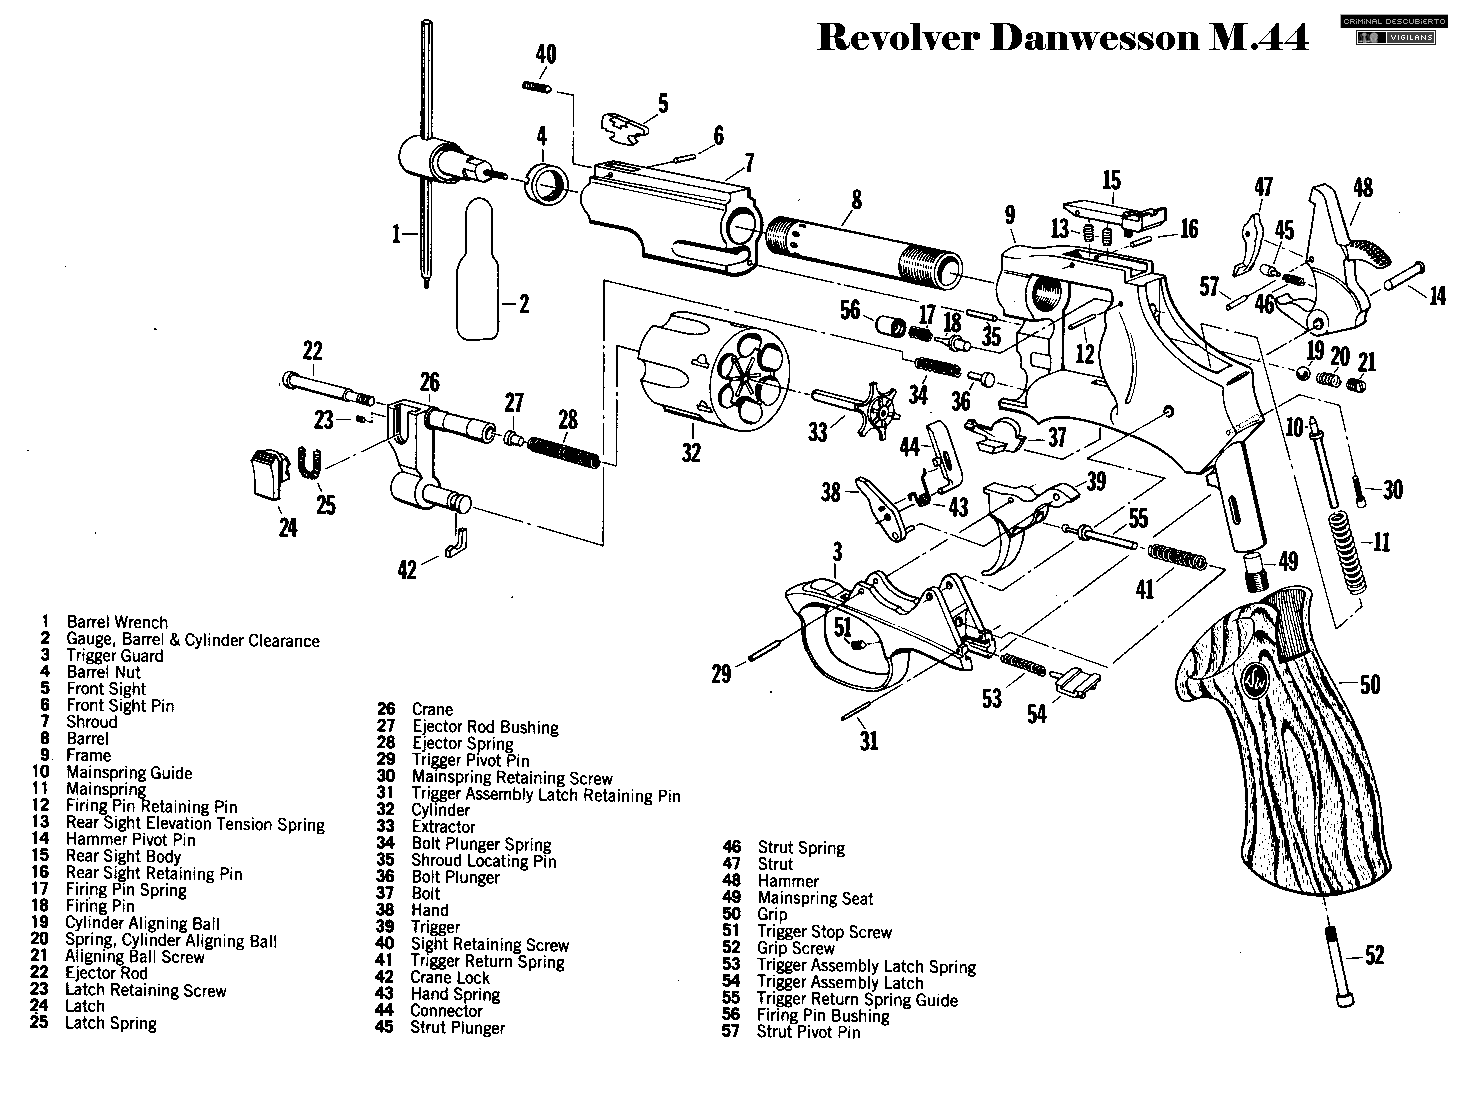 Revolver Danwesson M44 Weapons Firearms Diagrams